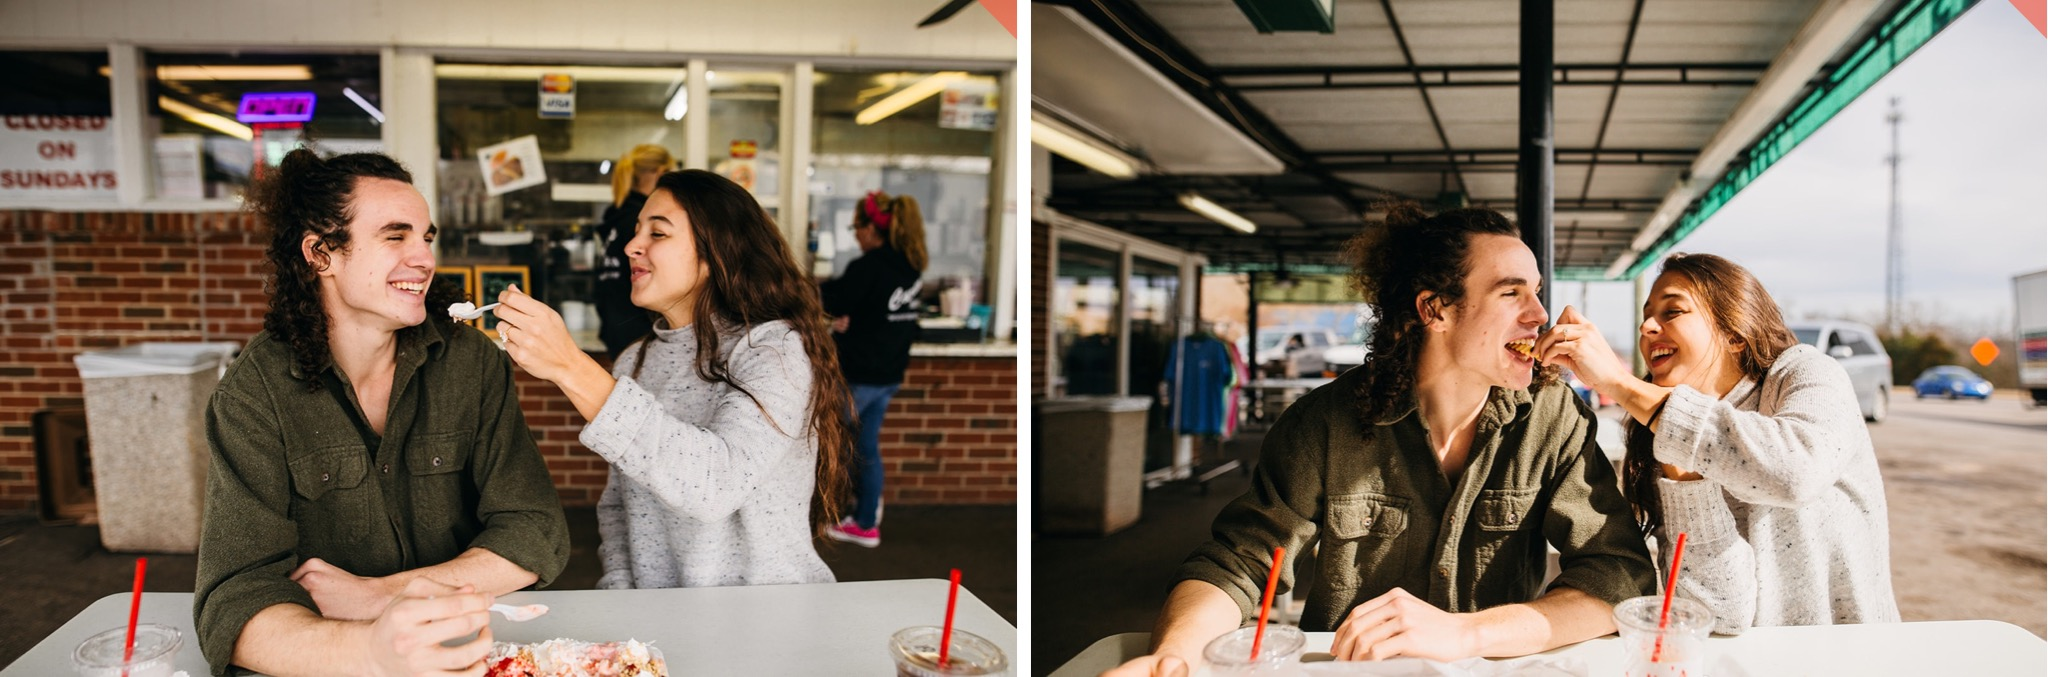 A woman feeds her fiance a bite of banana split in a booth outside a drive-in diner.